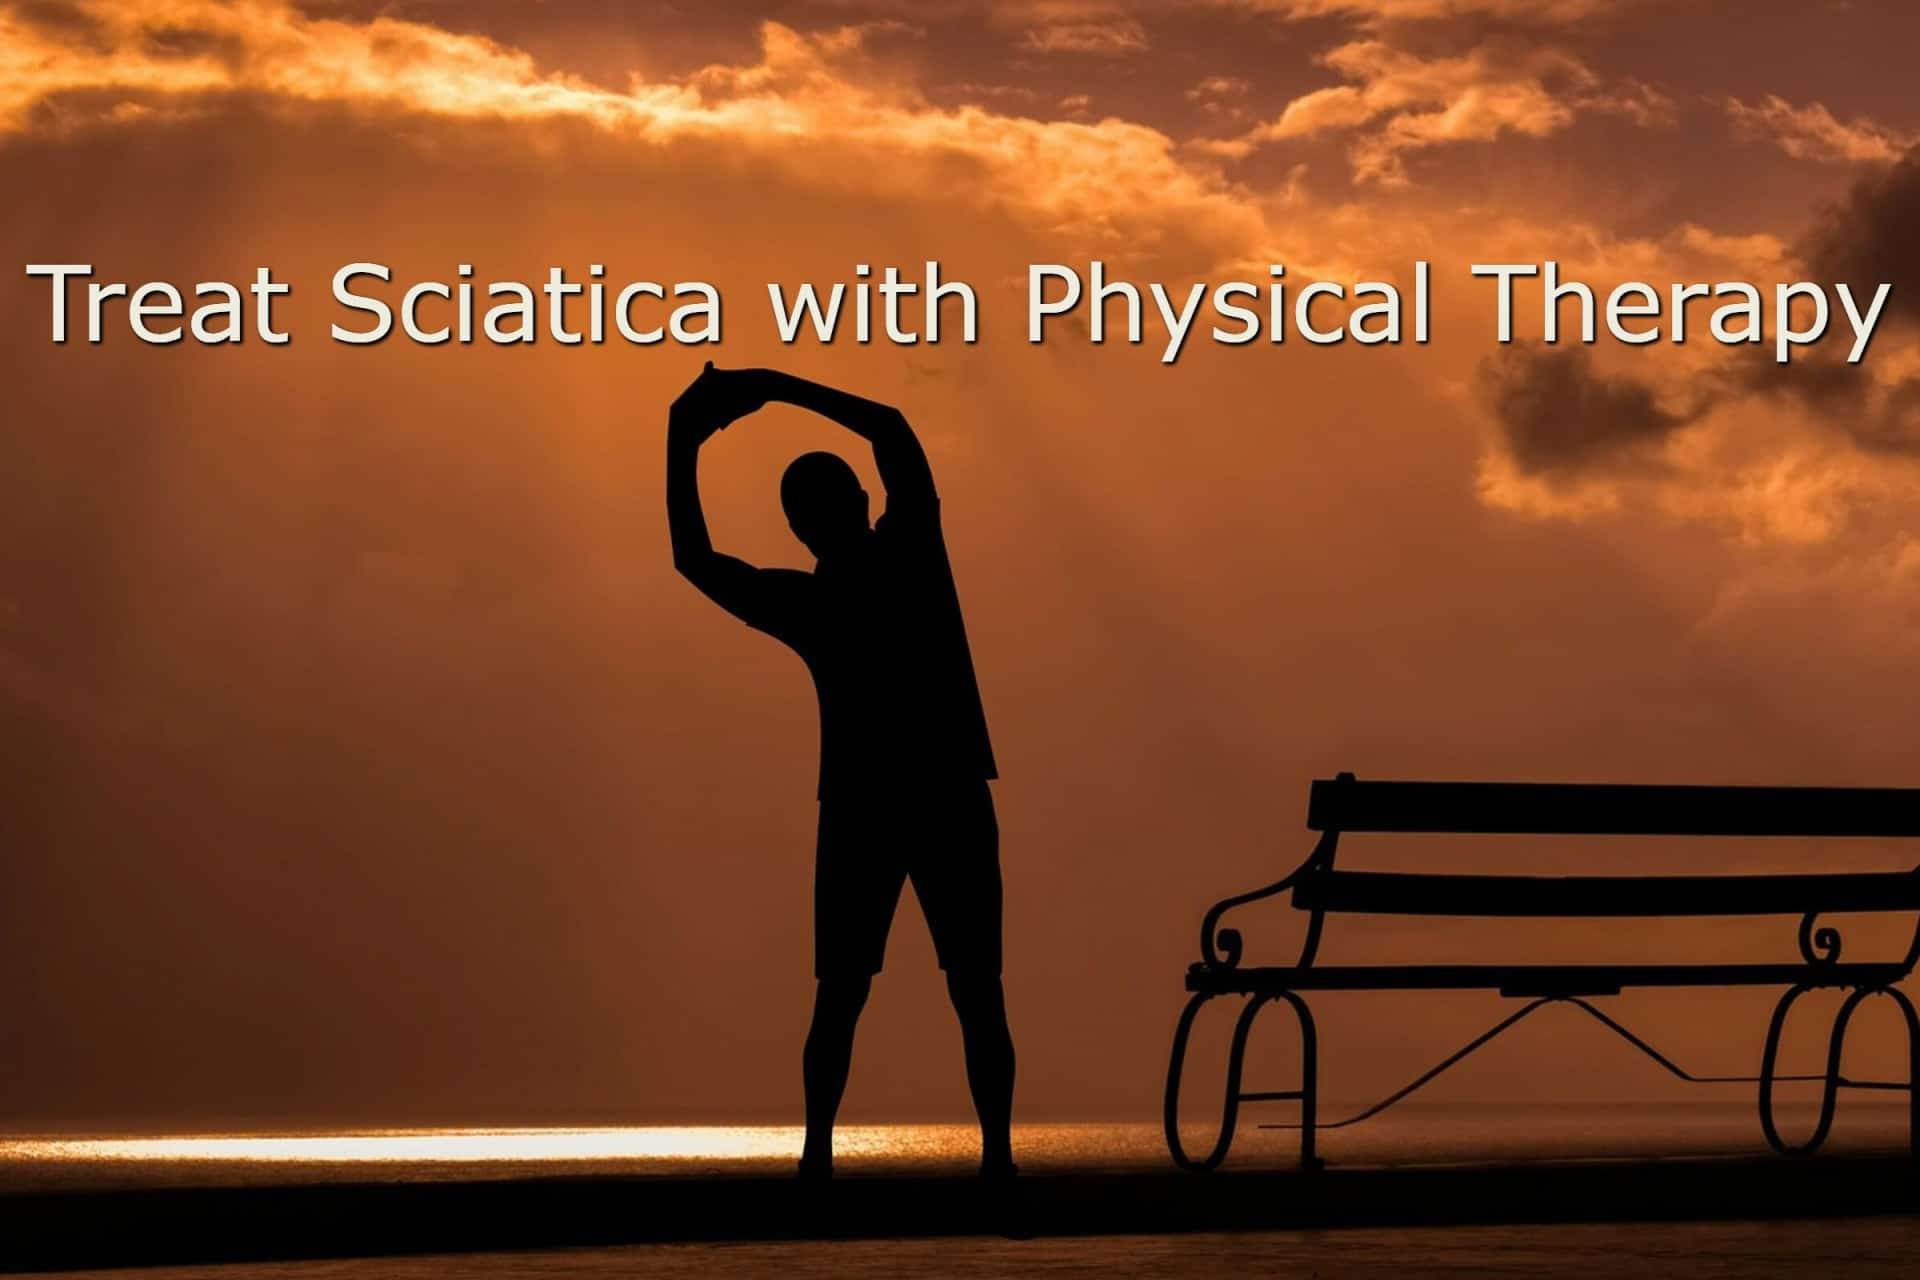 Treat Sciatica with Physical Therapy